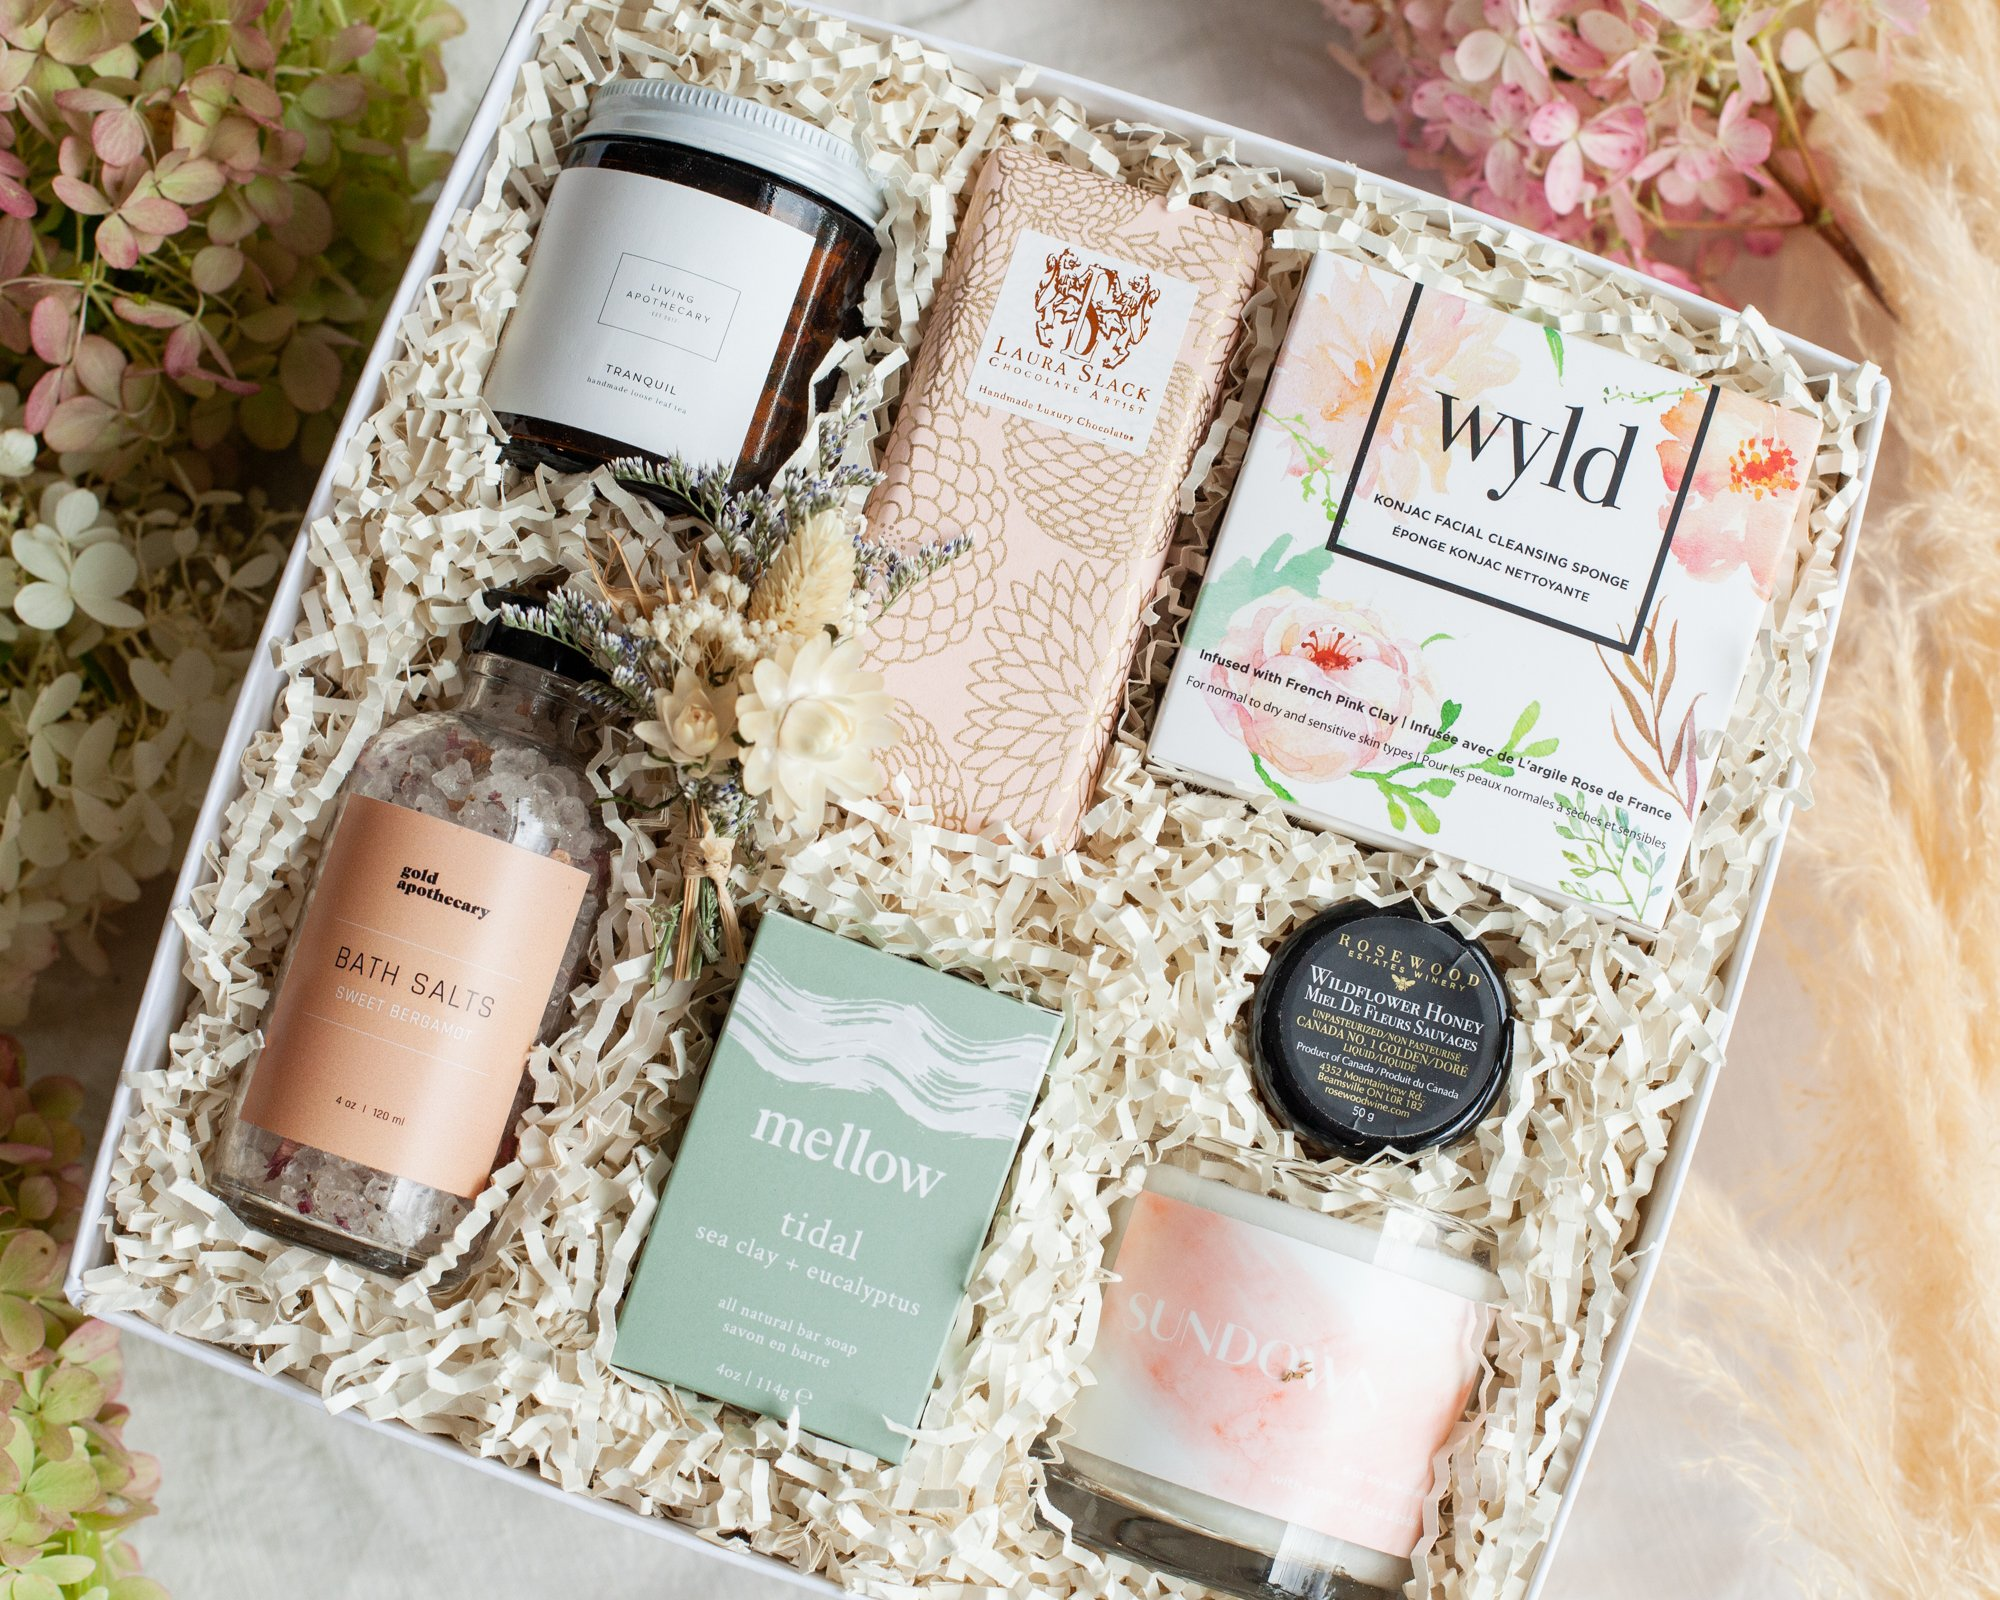 Present Day bridesmaid gifts